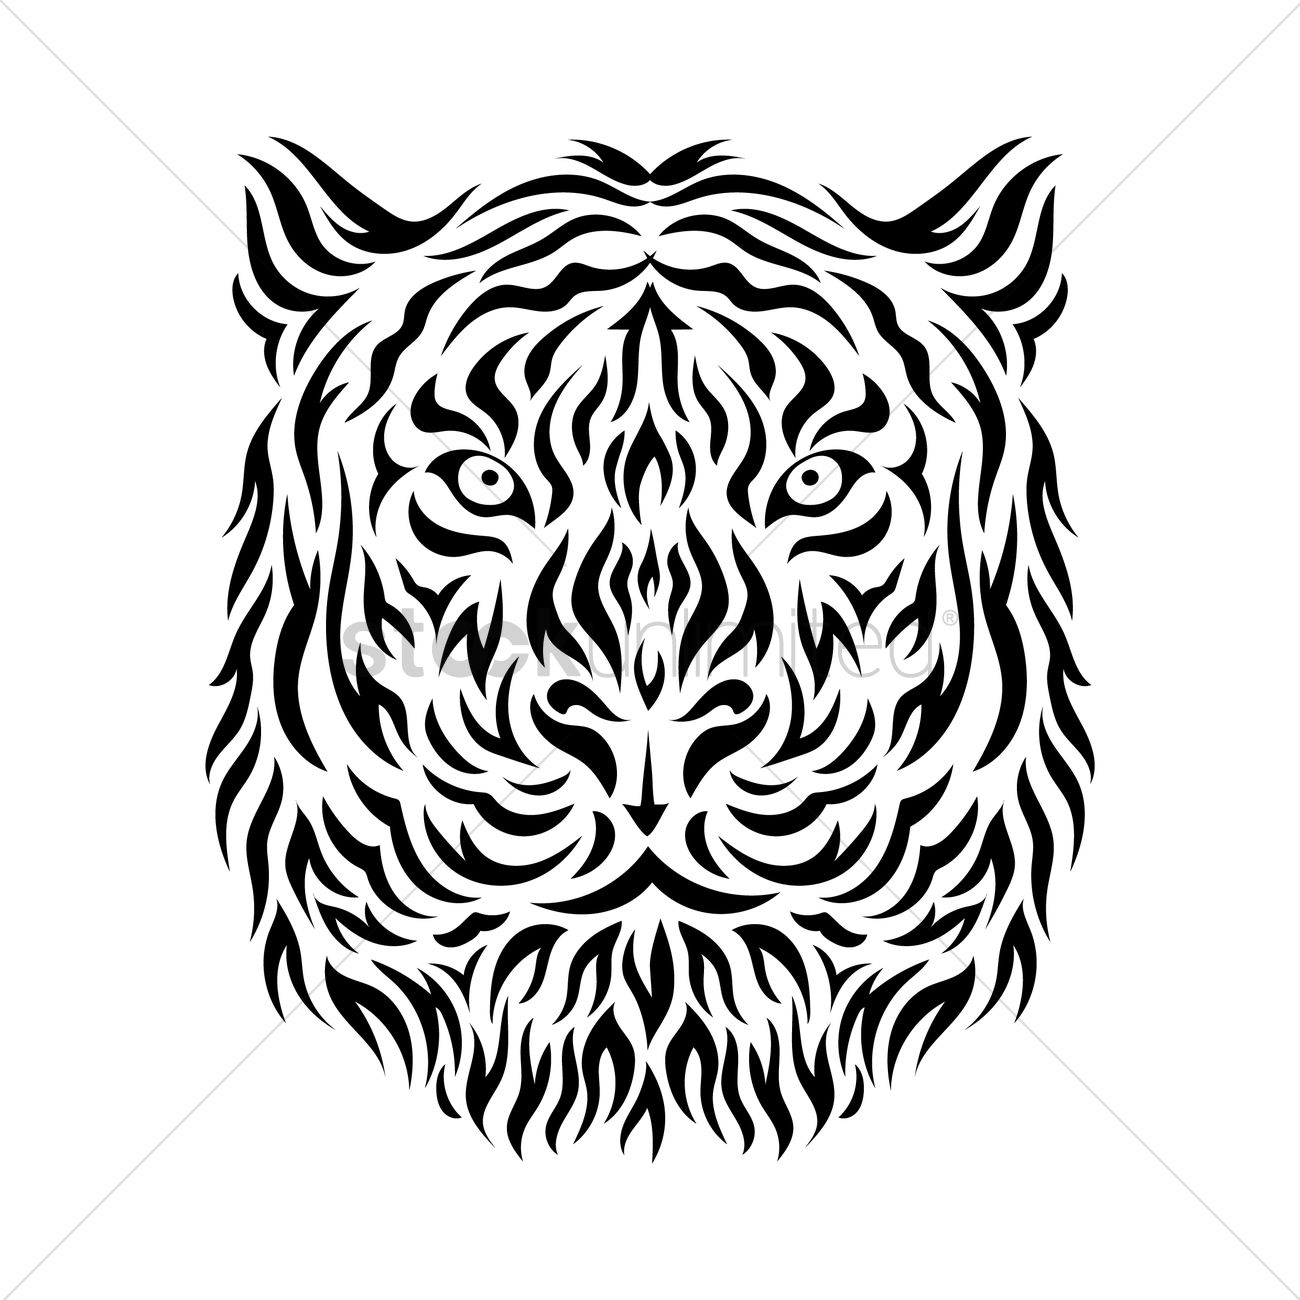 e4f38295a Tiger tattoo design Vector Image - 1432377 | StockUnlimited